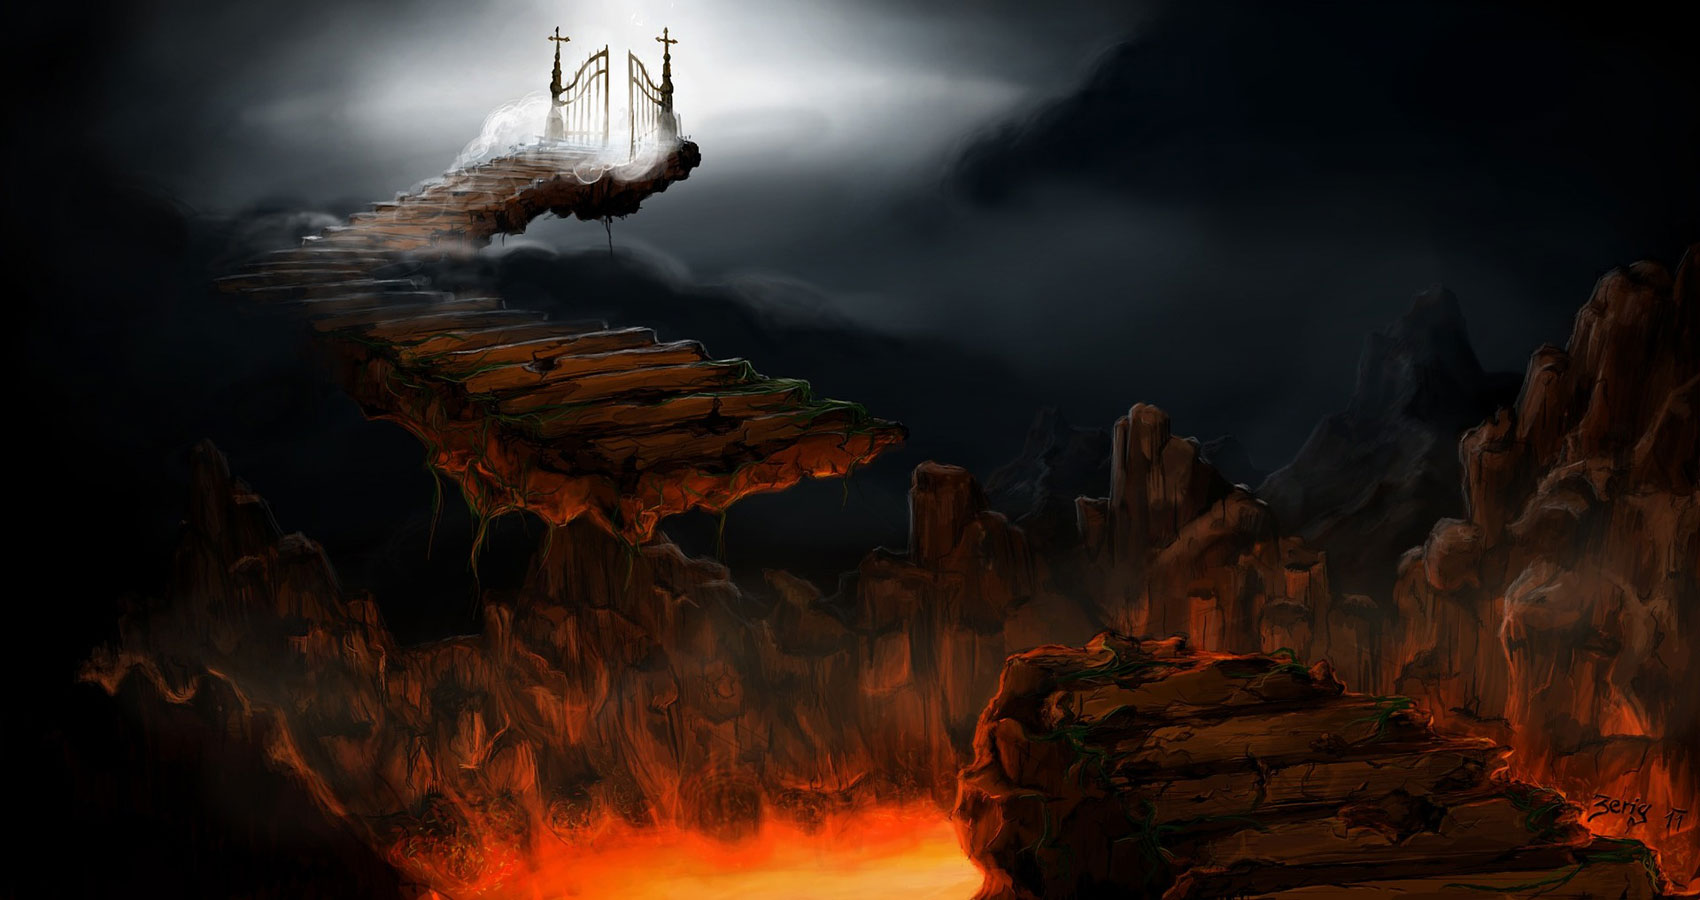 THERE IS NO EXIT IN HELL, by Norberto Franco Cisneros at Spillwords.com